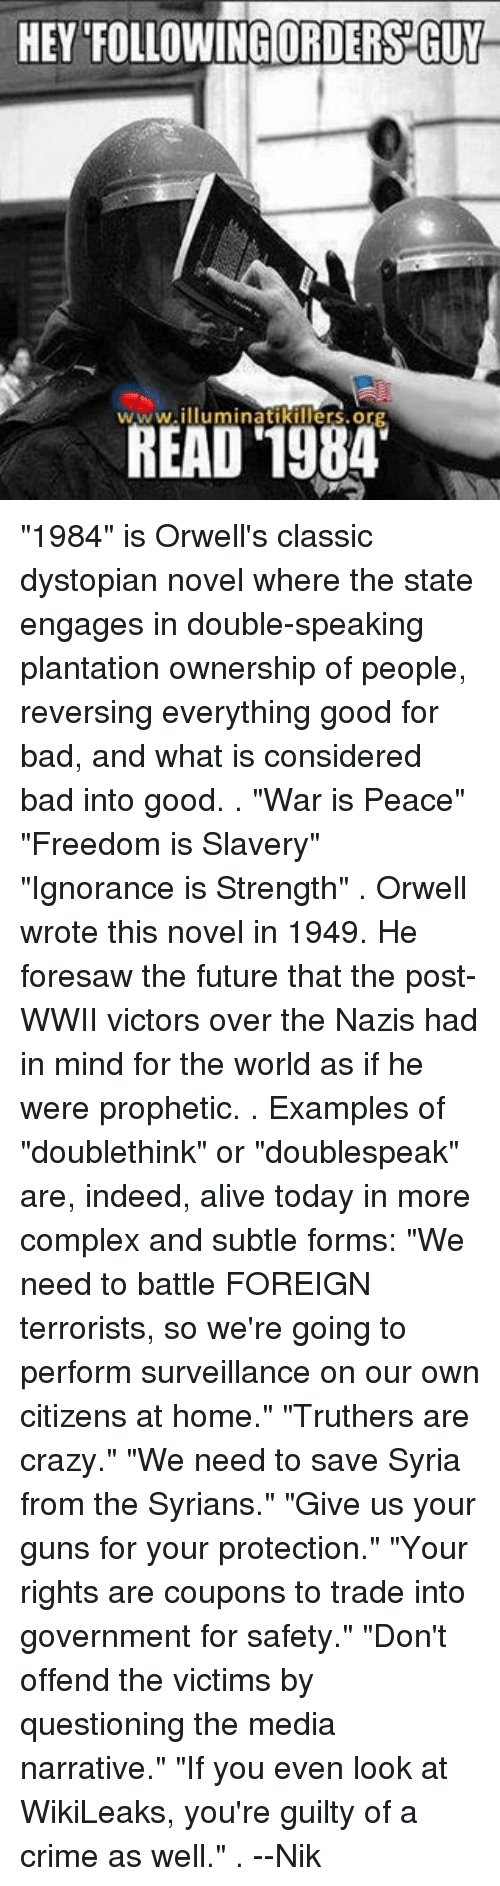 doublespeak and real world examples